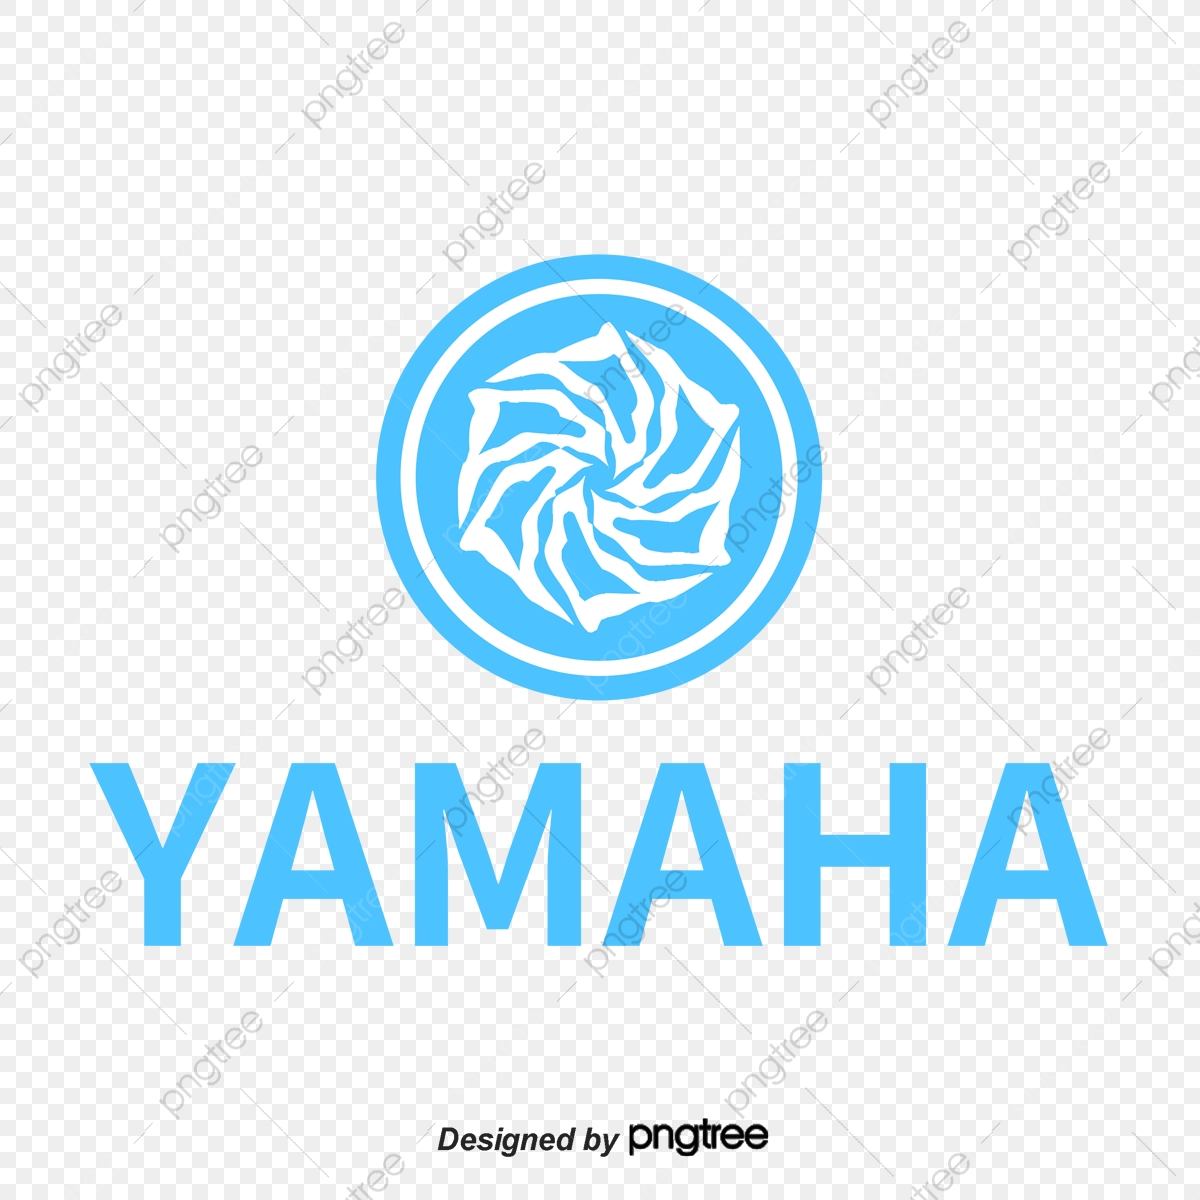 yamaha logo vector material yamaha vector yamaha yamaha logo png transparent clipart image and psd file for free download https pngtree com freepng yamaha logo vector material 2344580 html